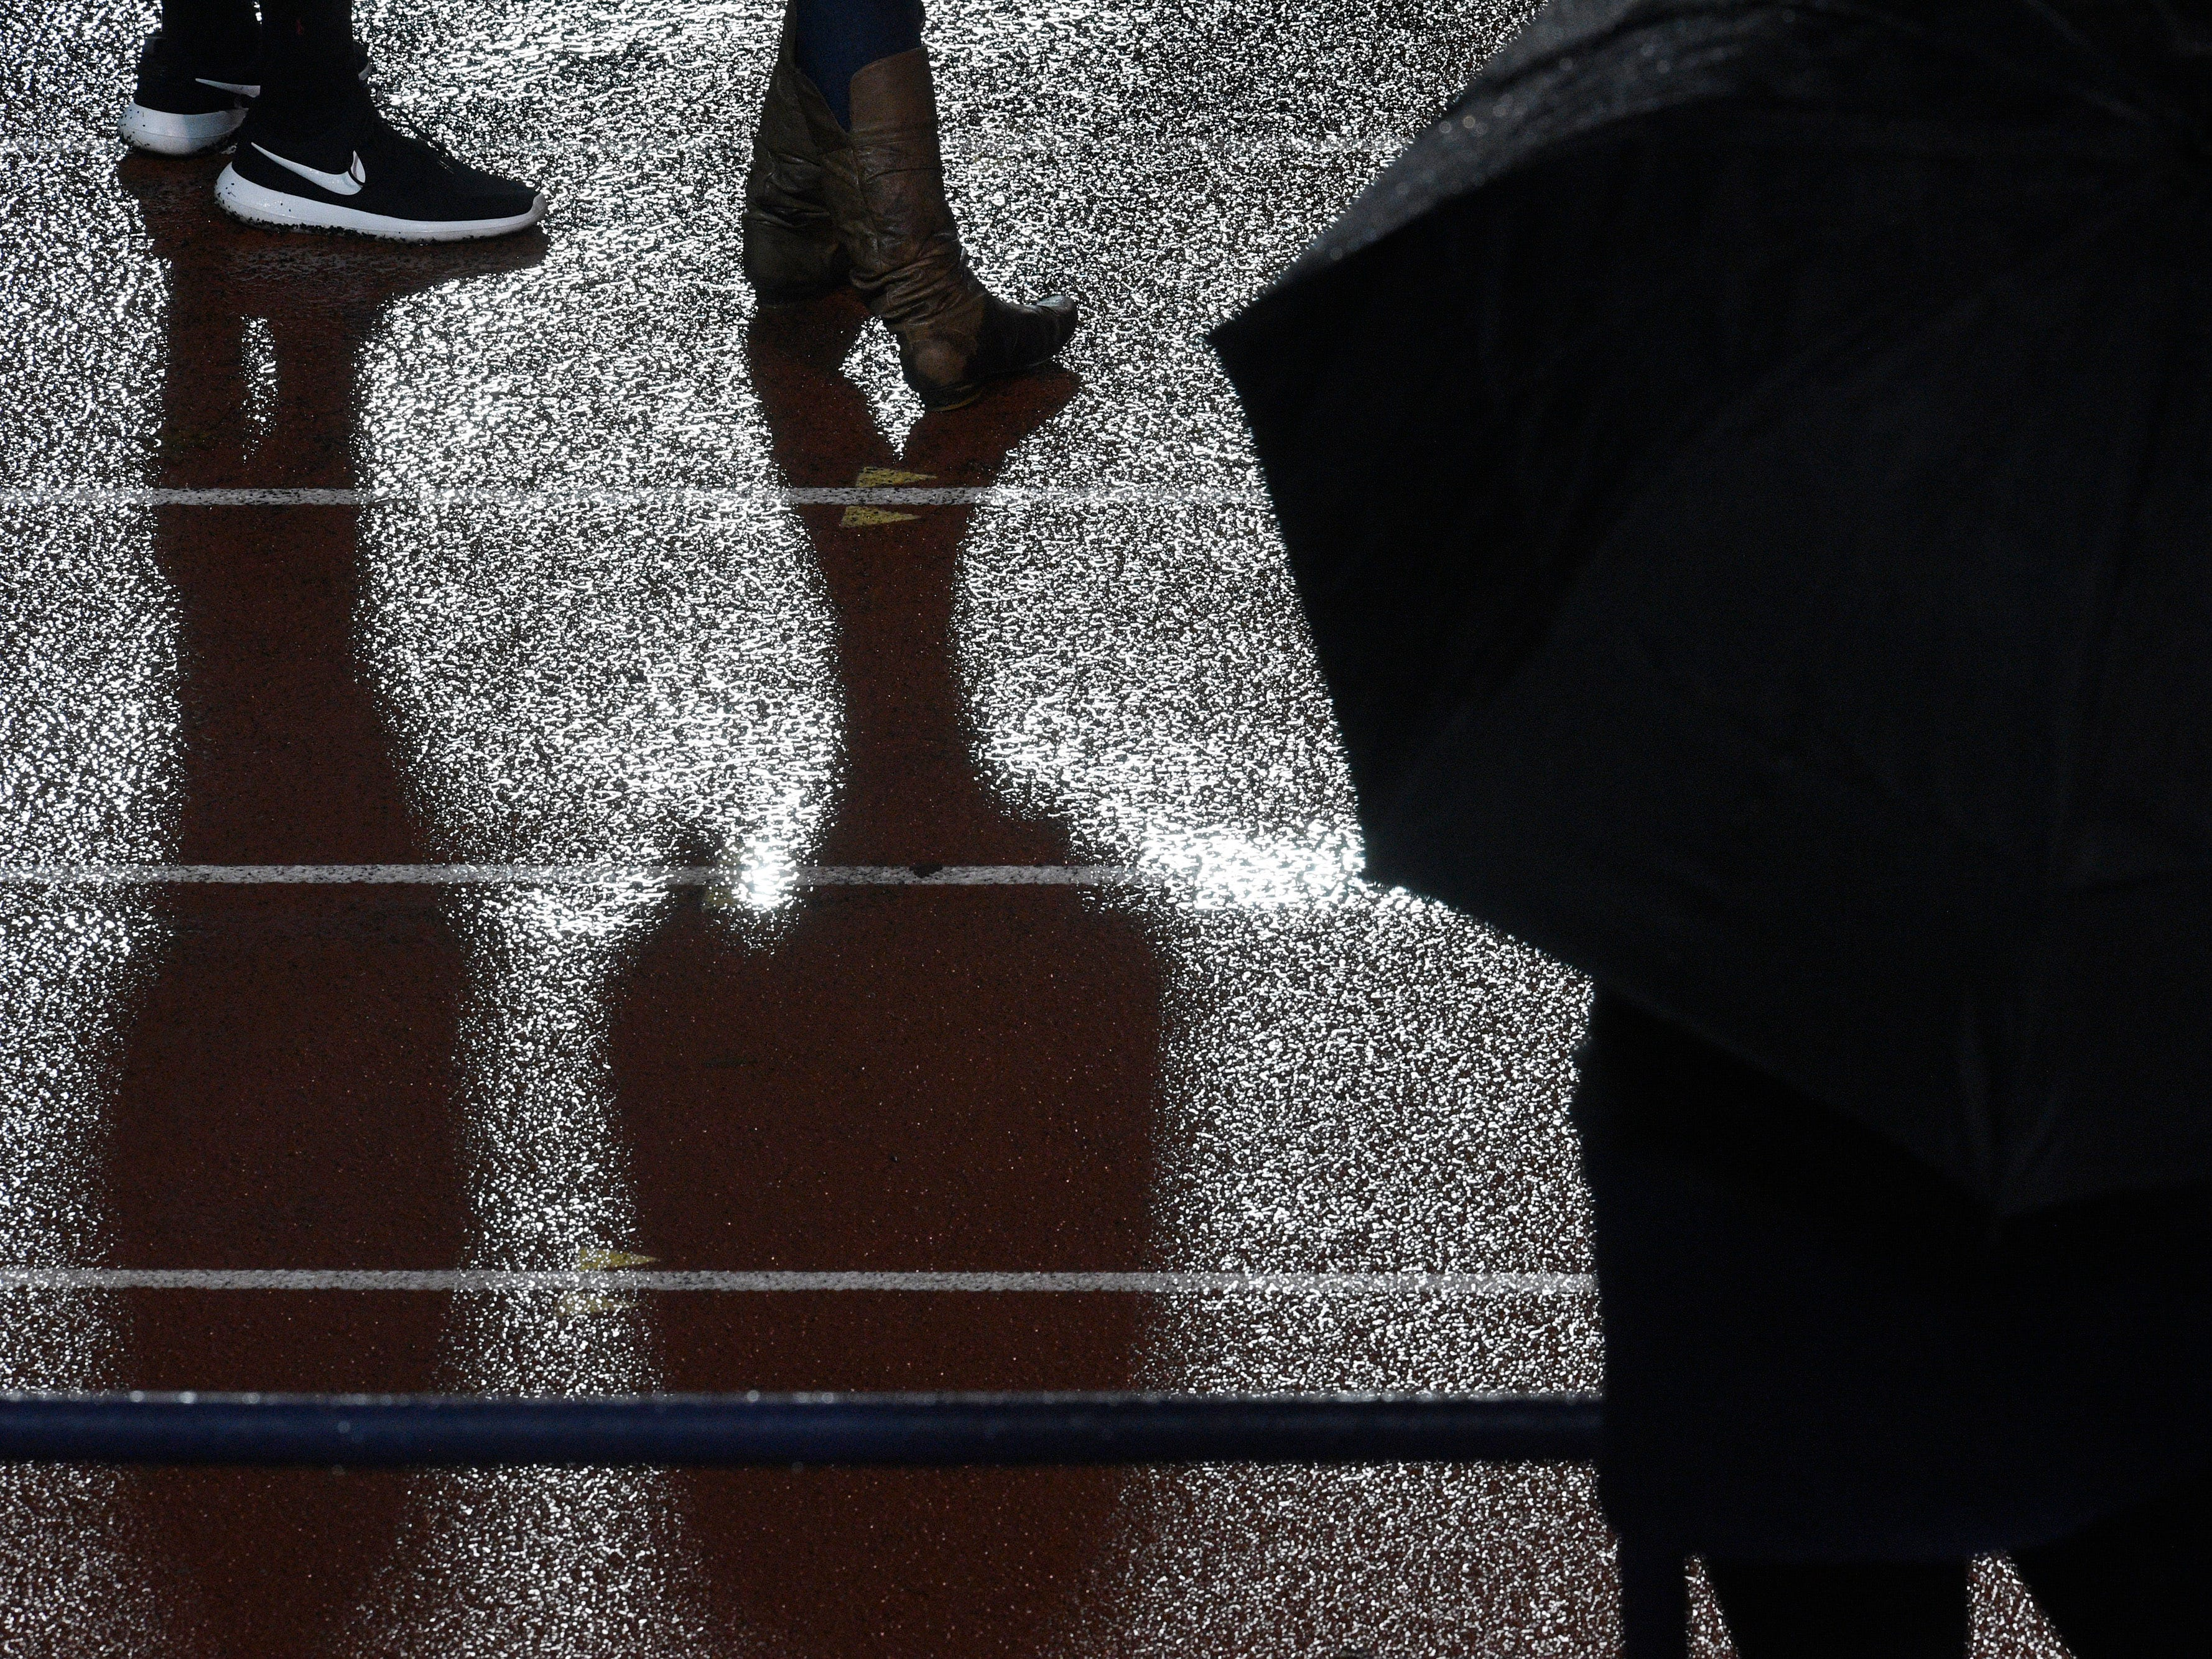 Fans are reflected on the wet track at the Division II-AAA BlueCross Bowl state championship at Tennessee Tech's Tucker Stadium in Cookeville, Tenn., on Friday, Nov. 30, 2018.